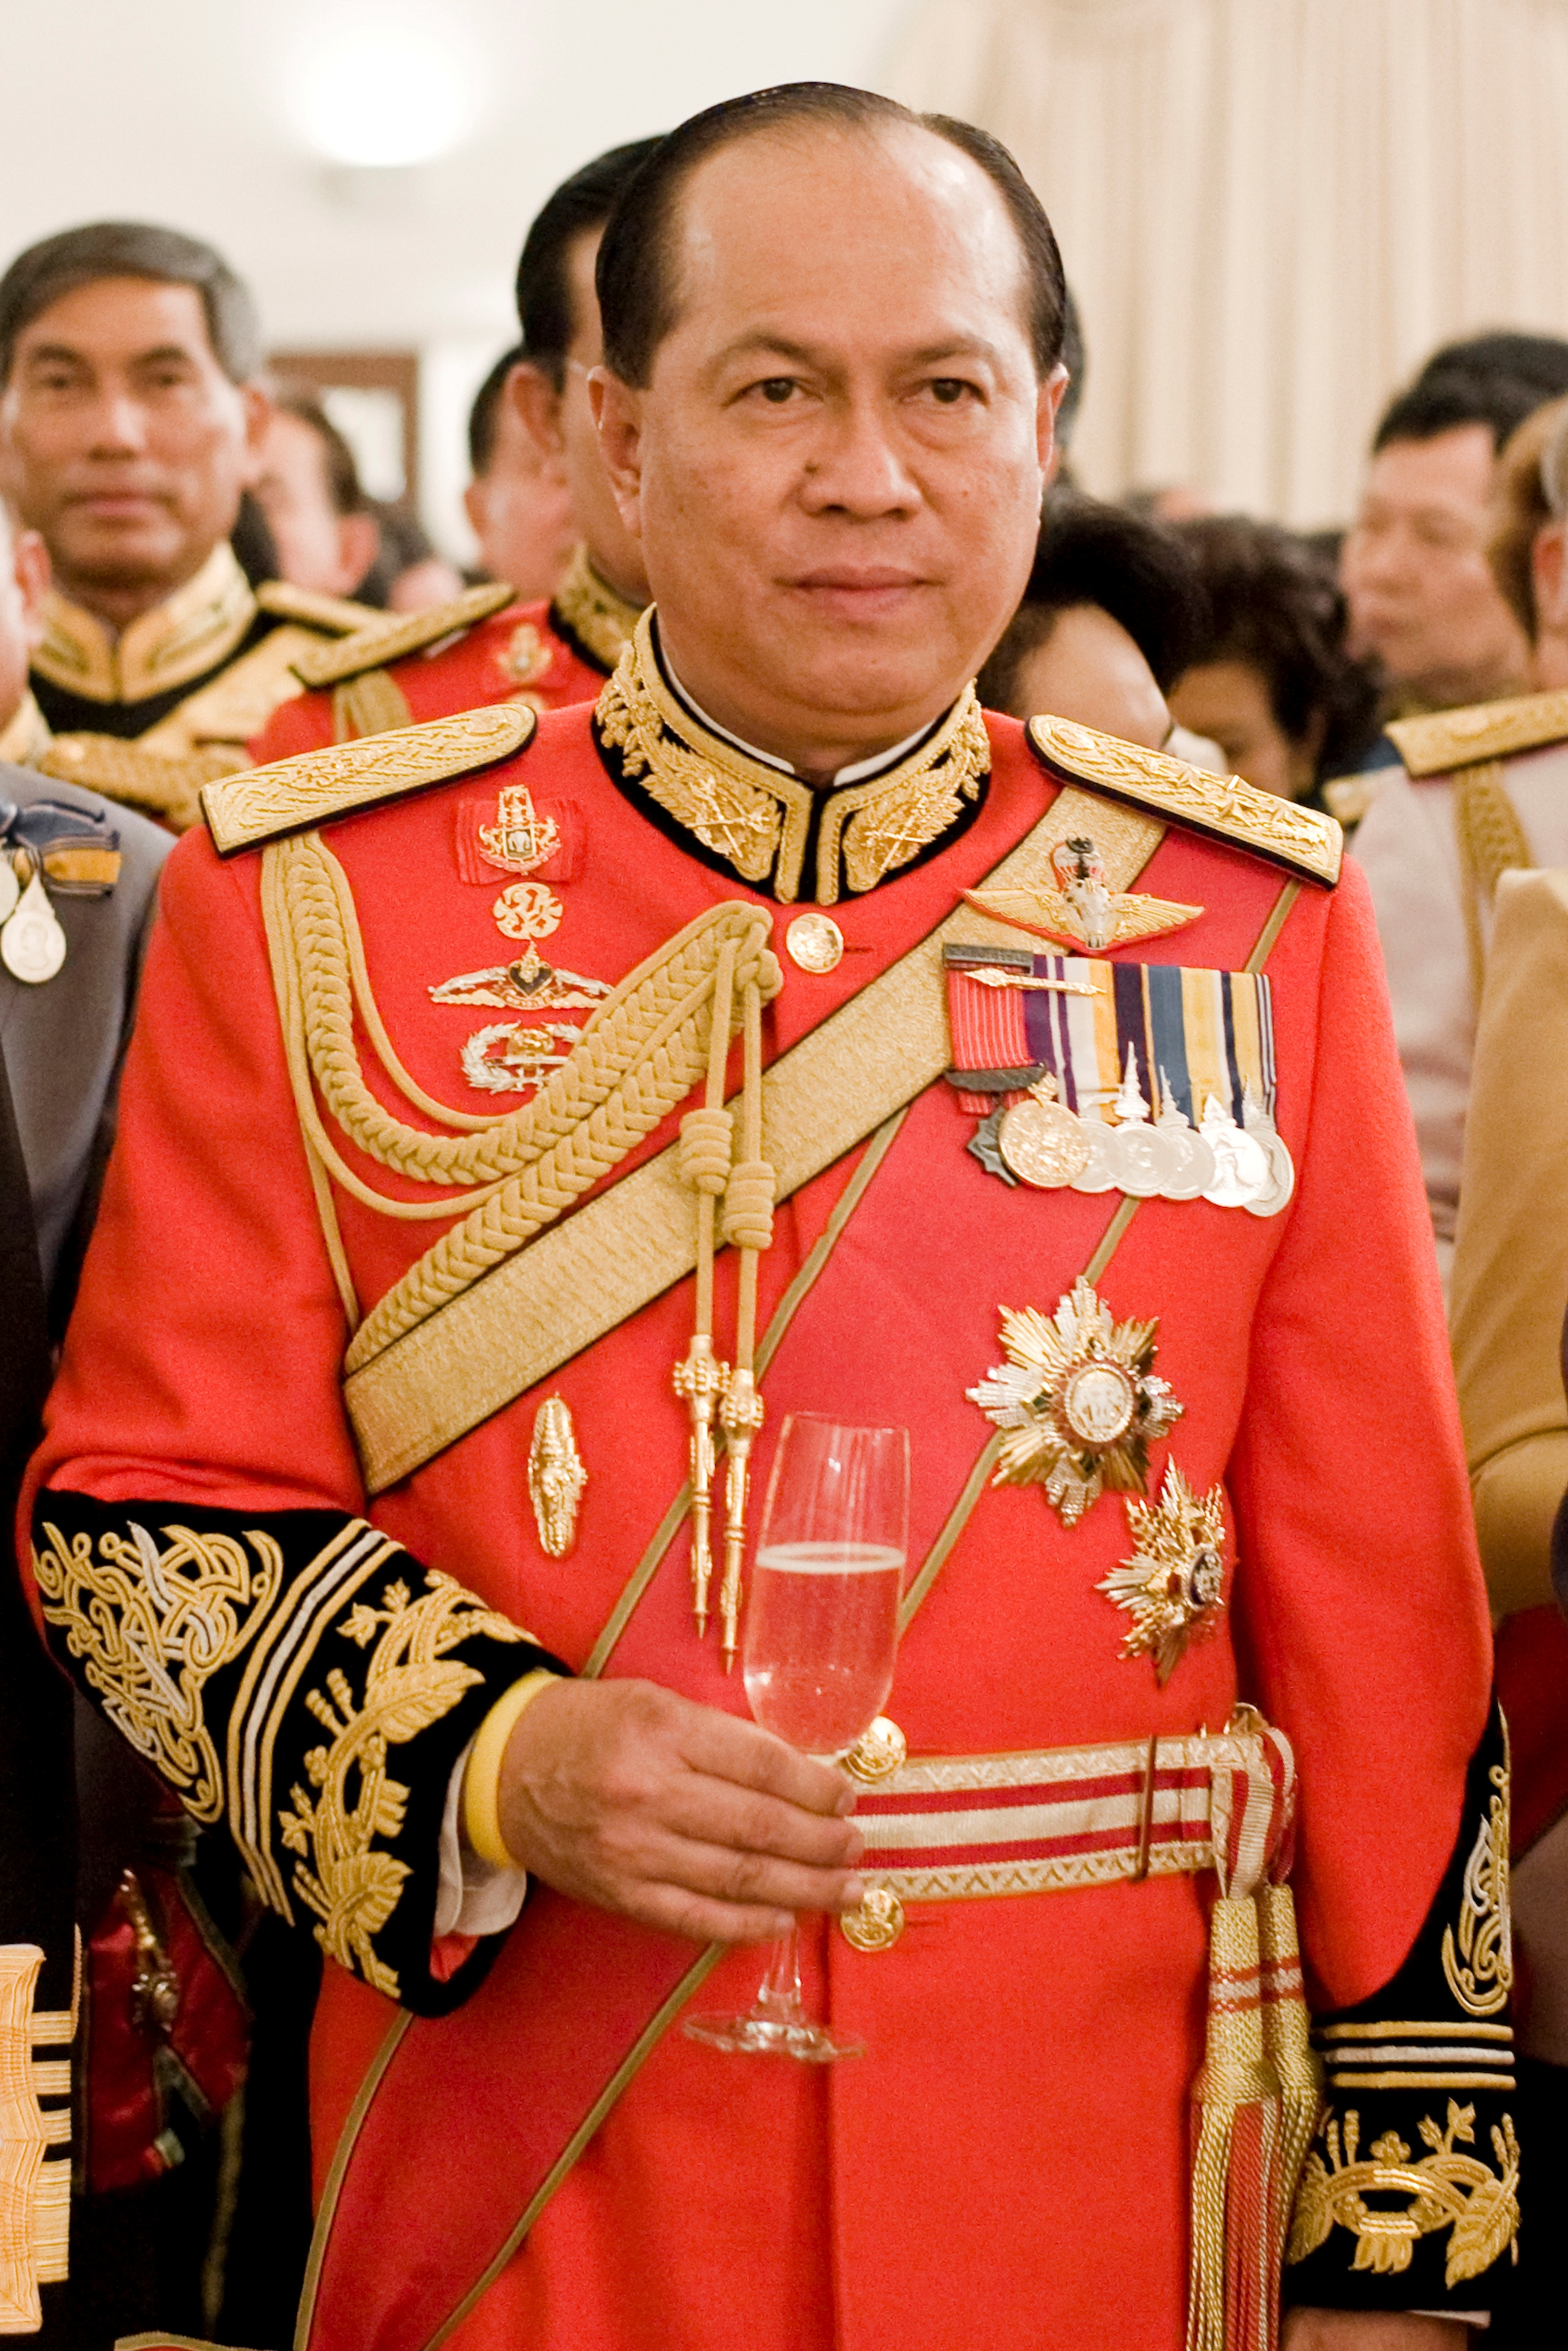 ... Anupong Paochinda (in 1st Infantry Regiment's royal guard uniform).jpg